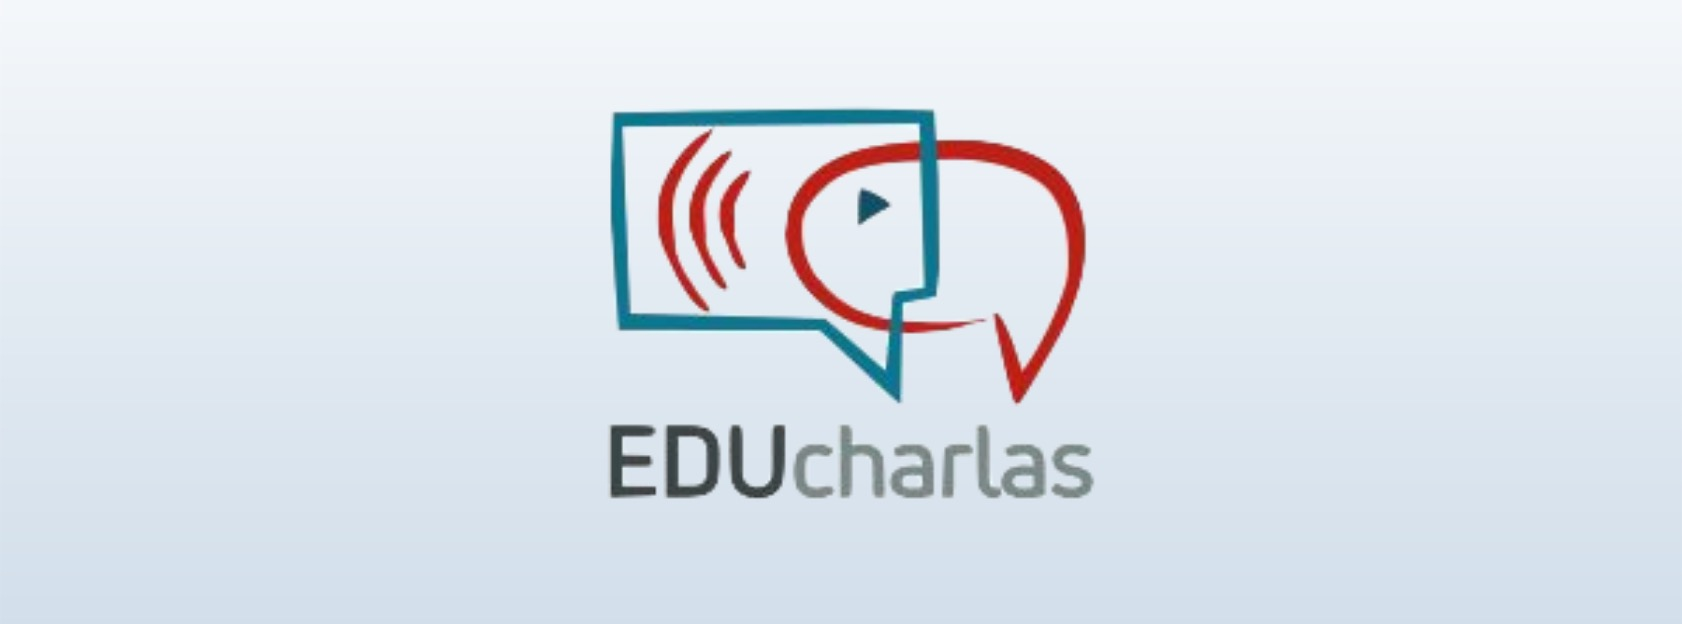 EduCharla INTEF